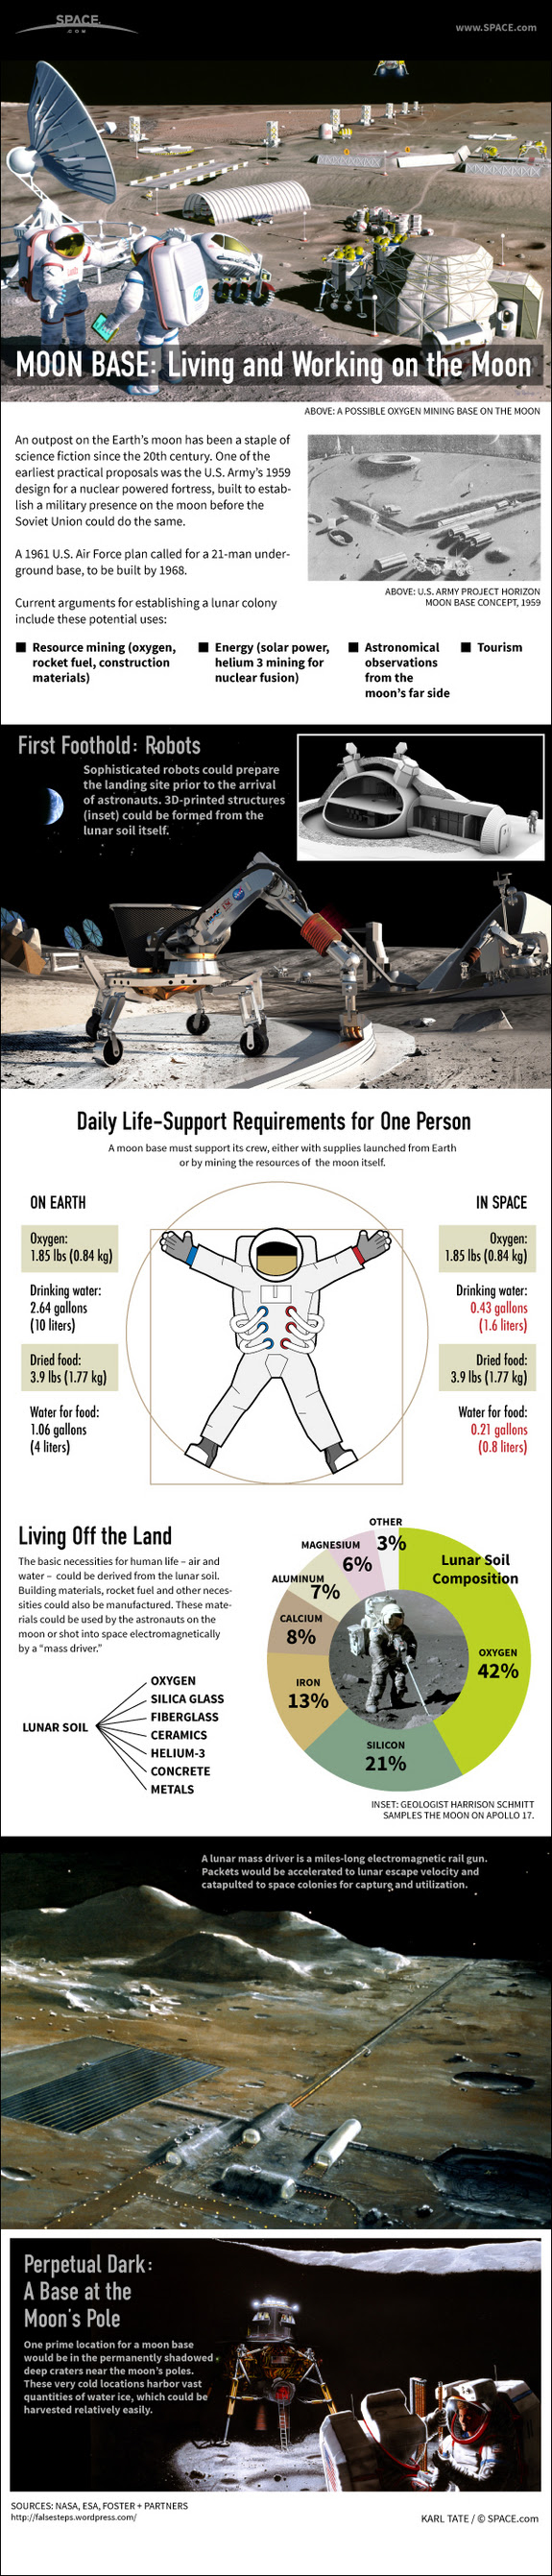 Home On the Moon: How to Build a Lunar Colony